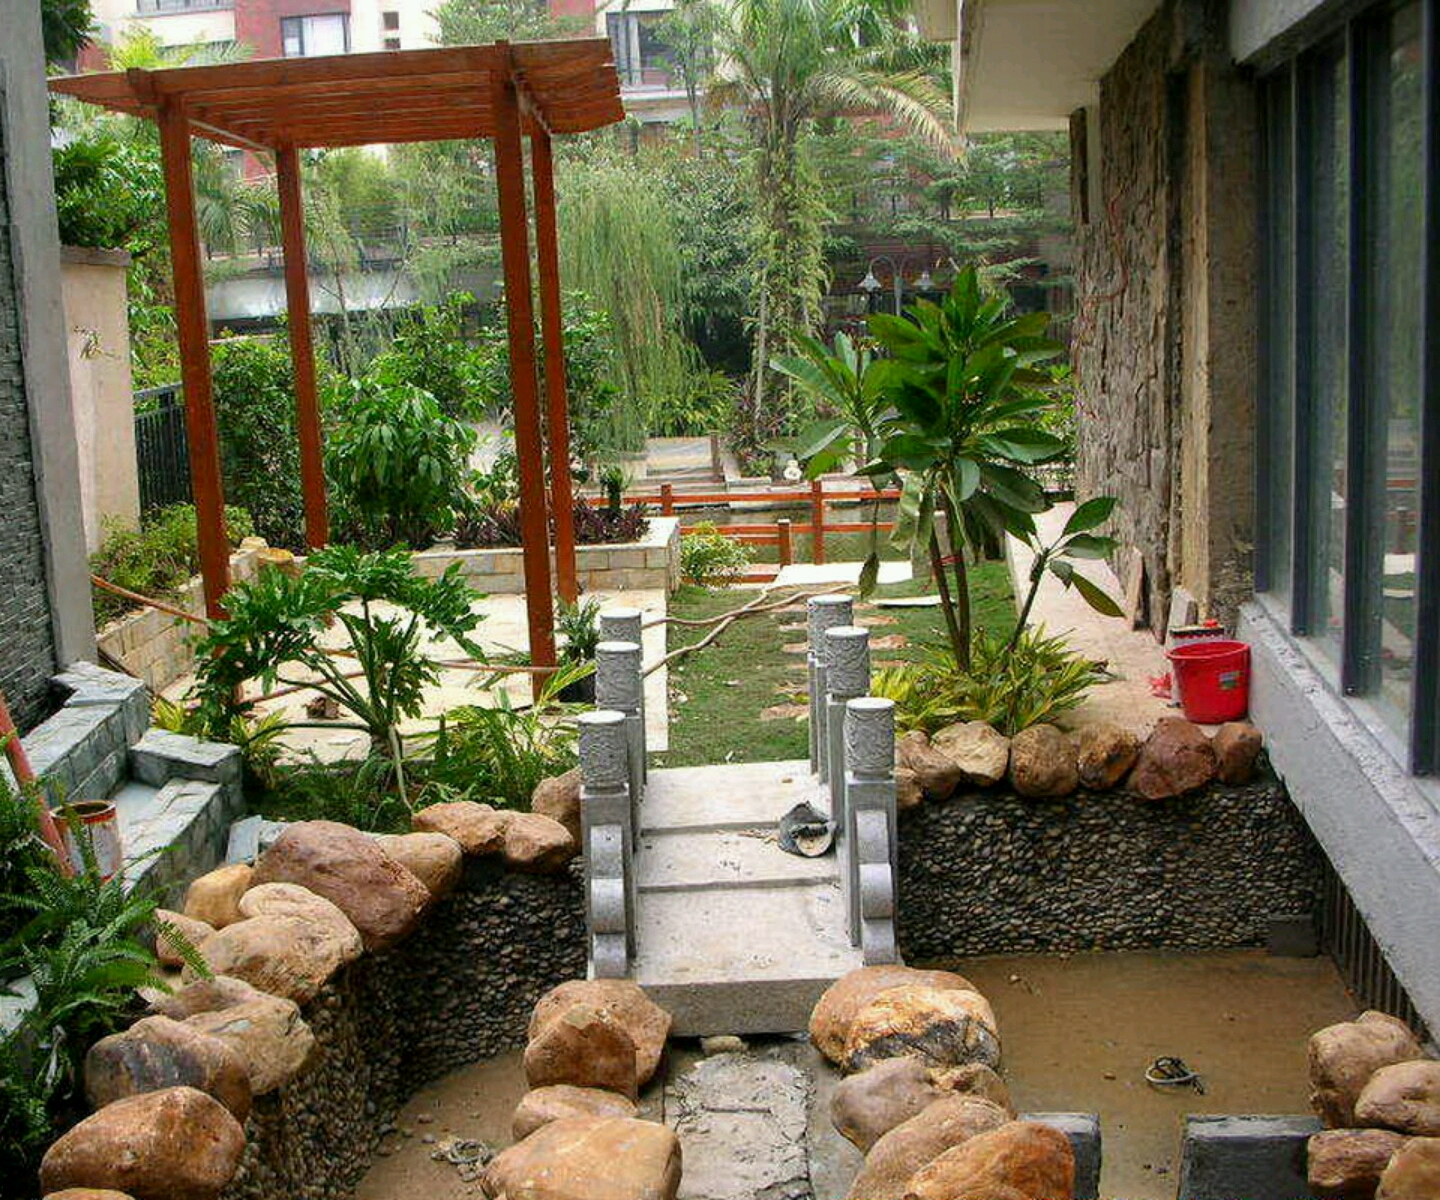 New home designs latest beautiful home gardens designs for Small beautiful gardens ideas